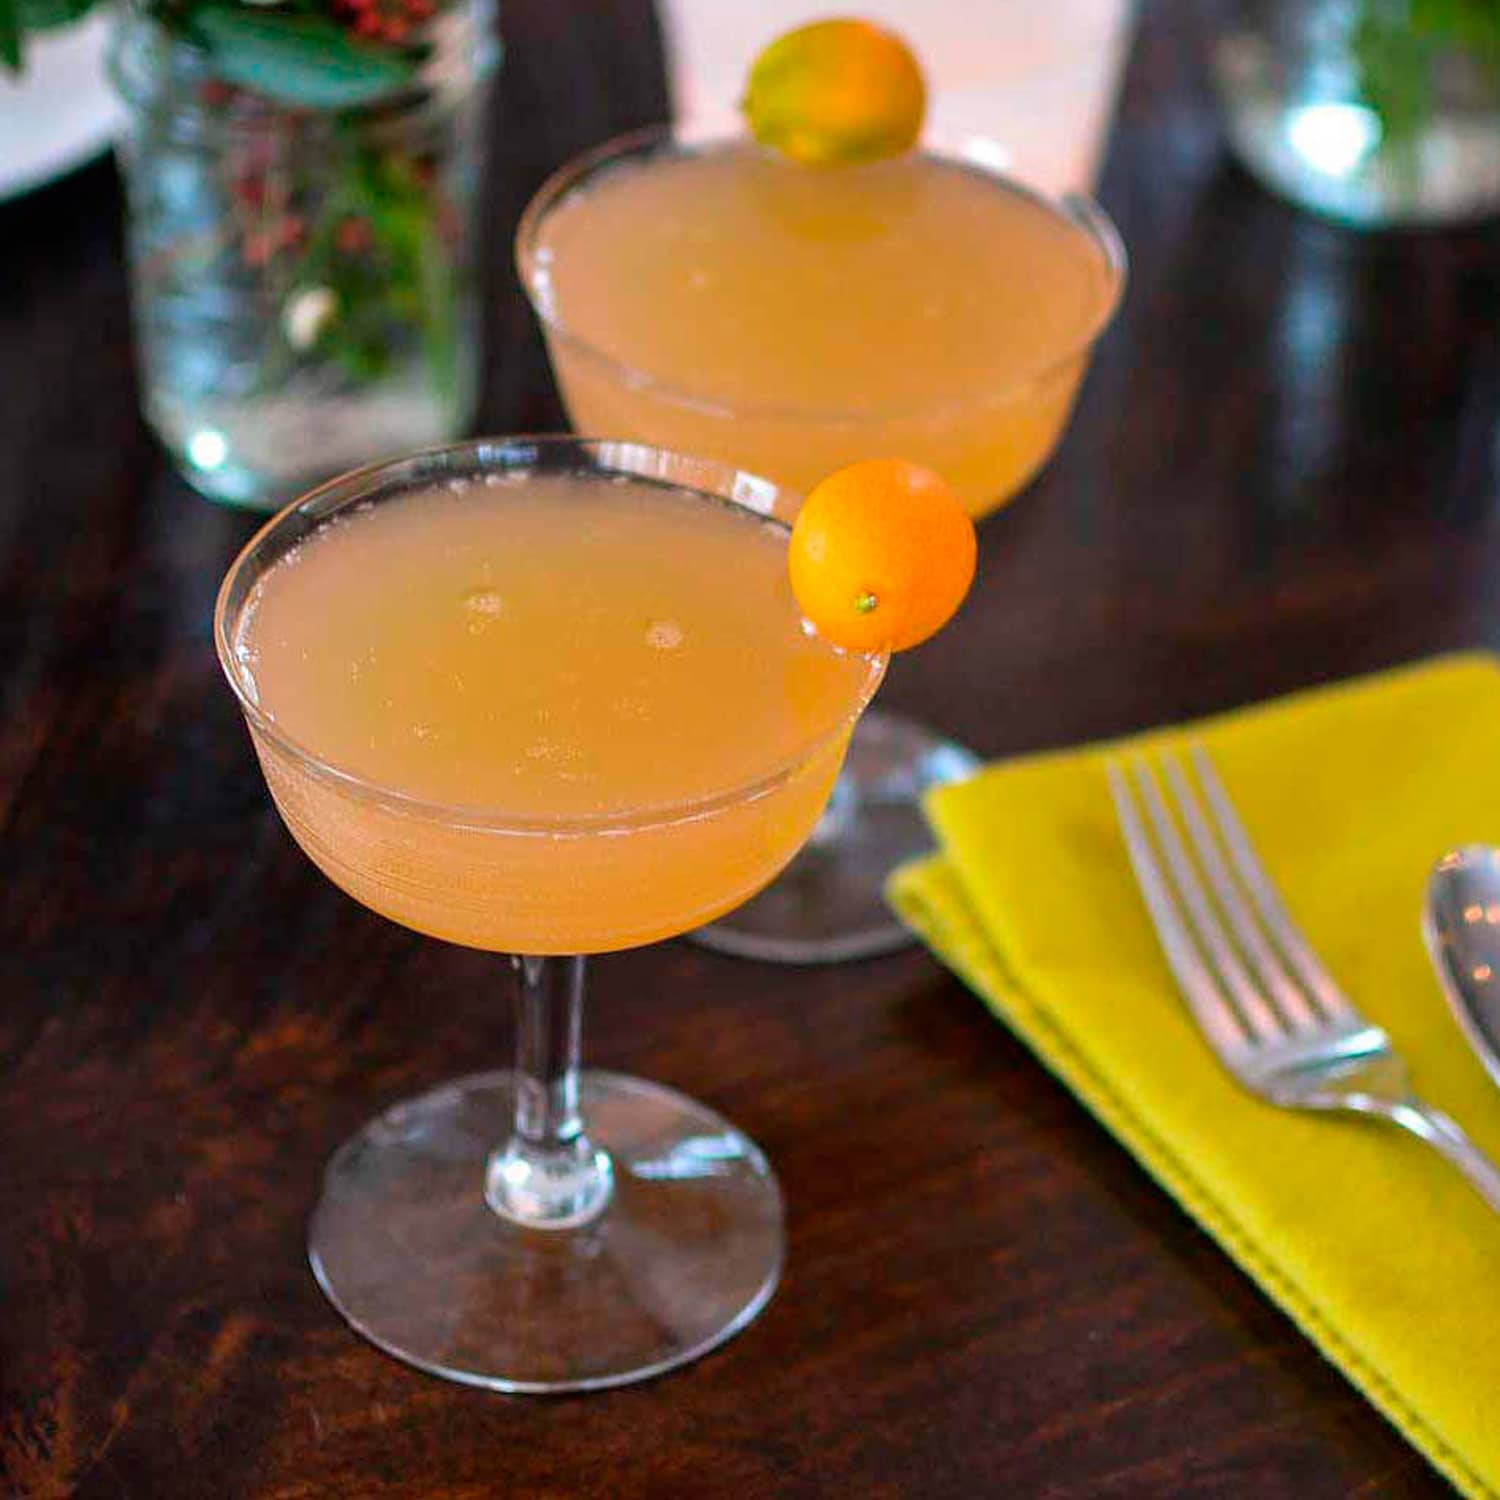 5 Restaurant Tips for Making Top-Notch Cocktails at Home